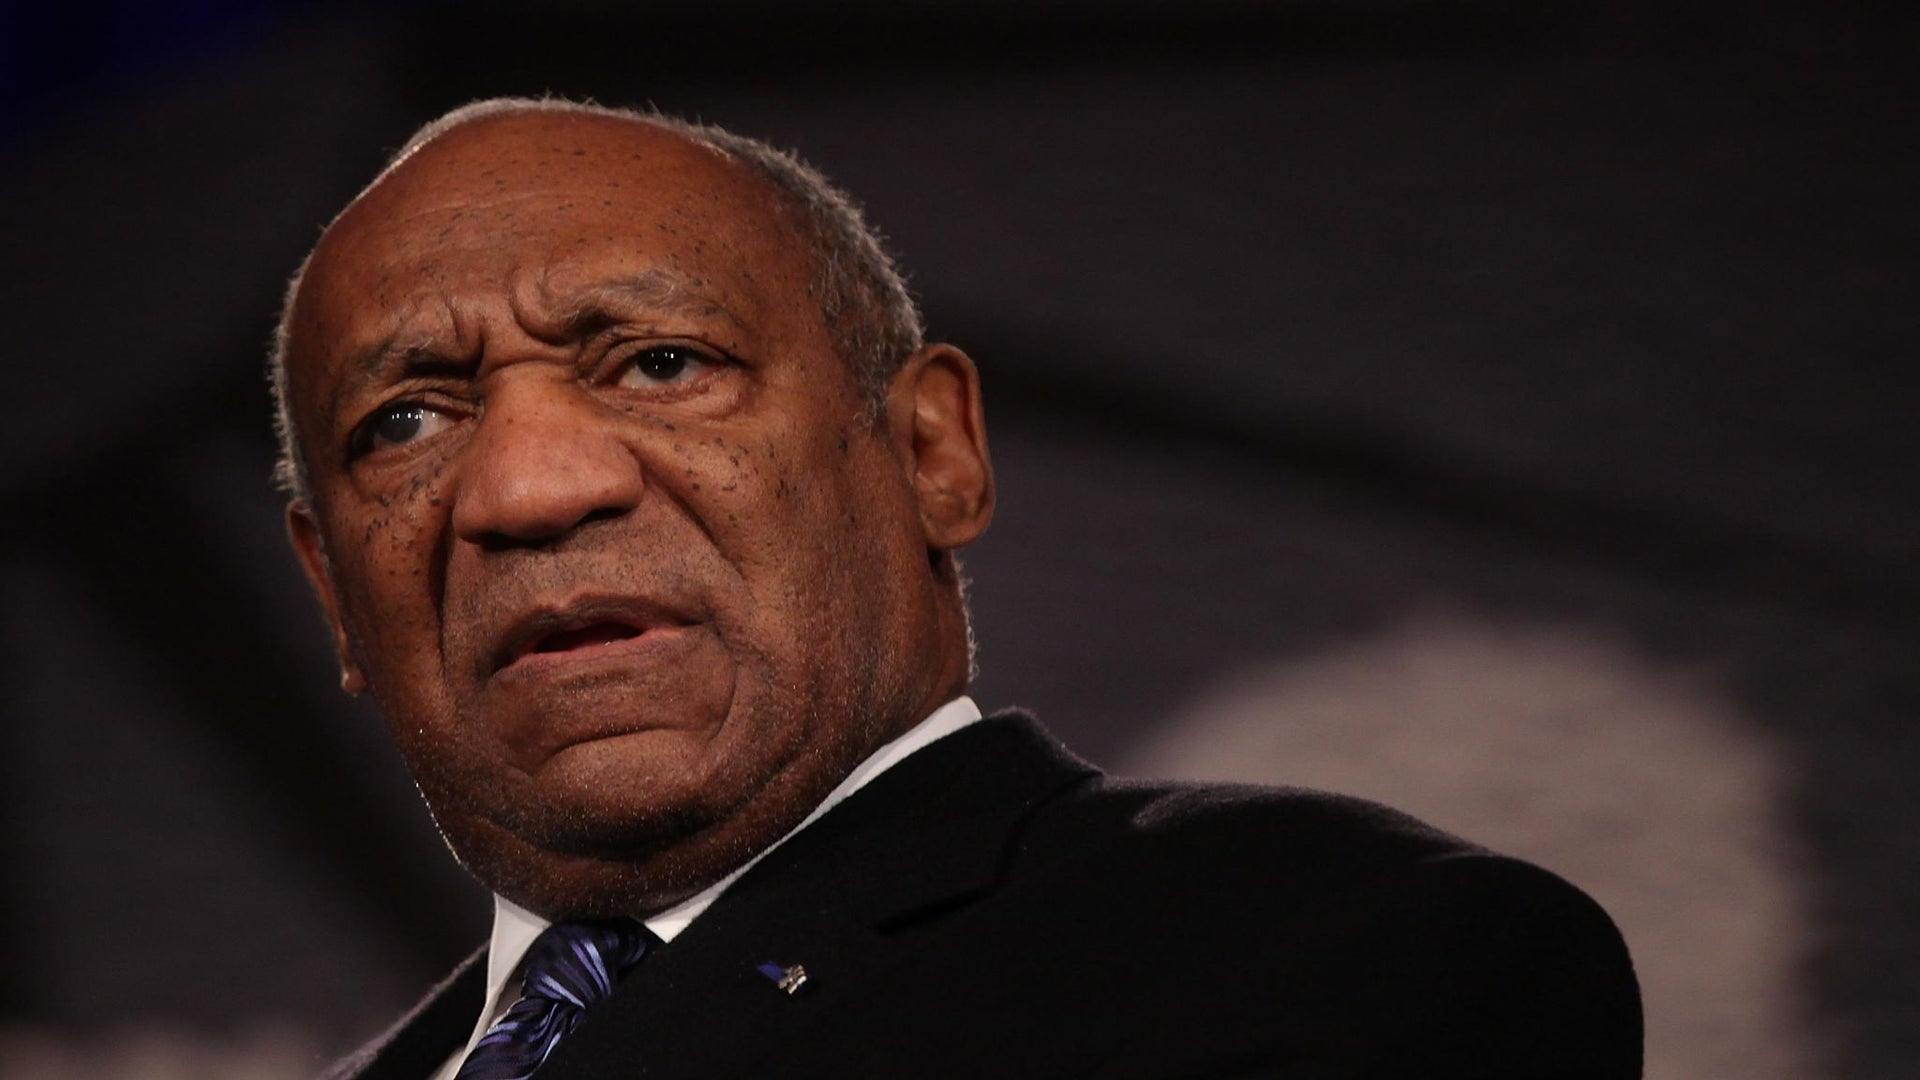 Bill Cosby Calls Himself 'America's Dad' In Father's Day Post on Social Media